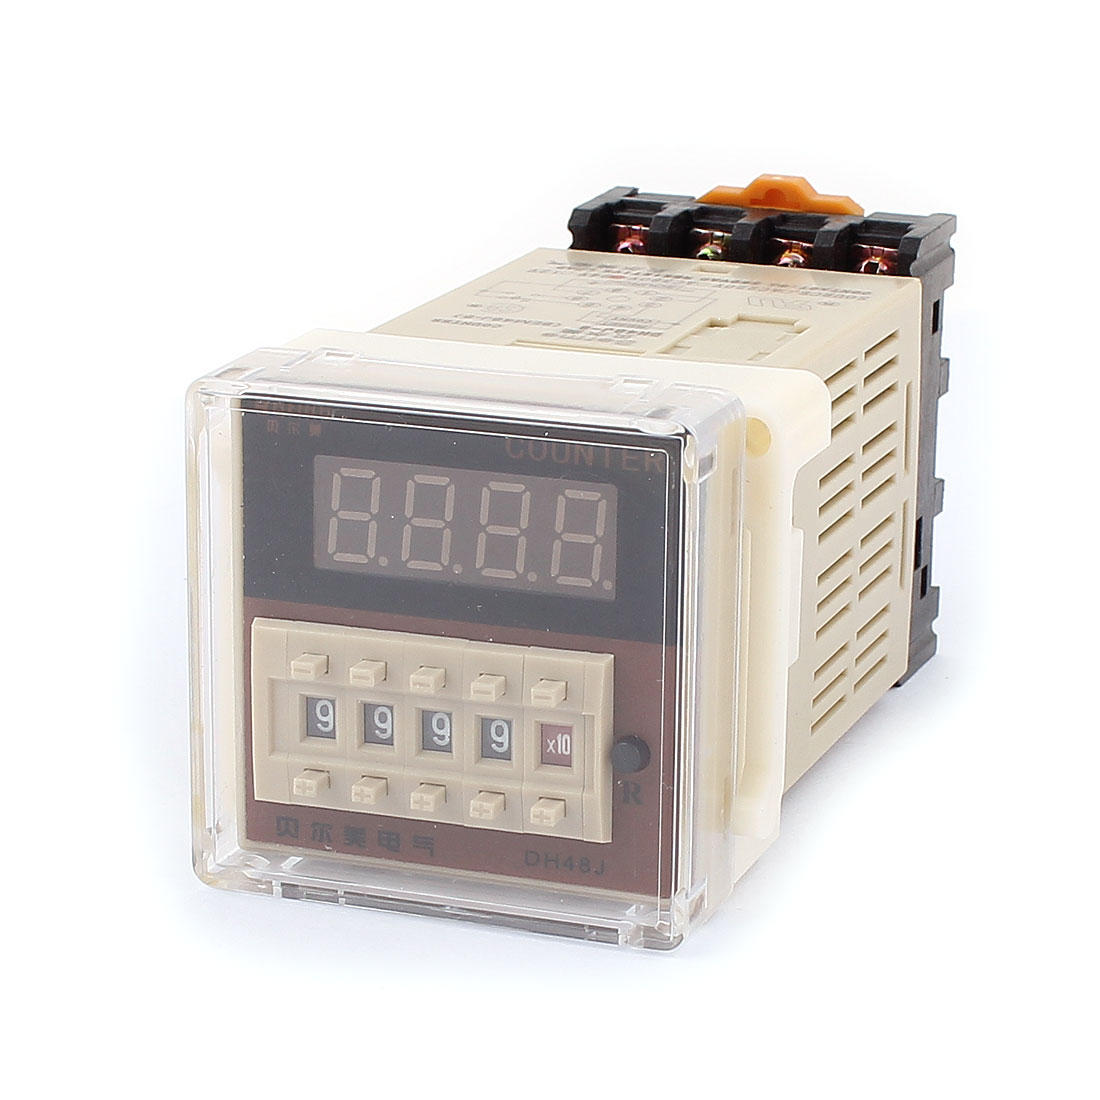 DH48J-8 AC/DC 24V 8Terminal 0-999900 Counter Adjustable Timer Delay Relay w Base